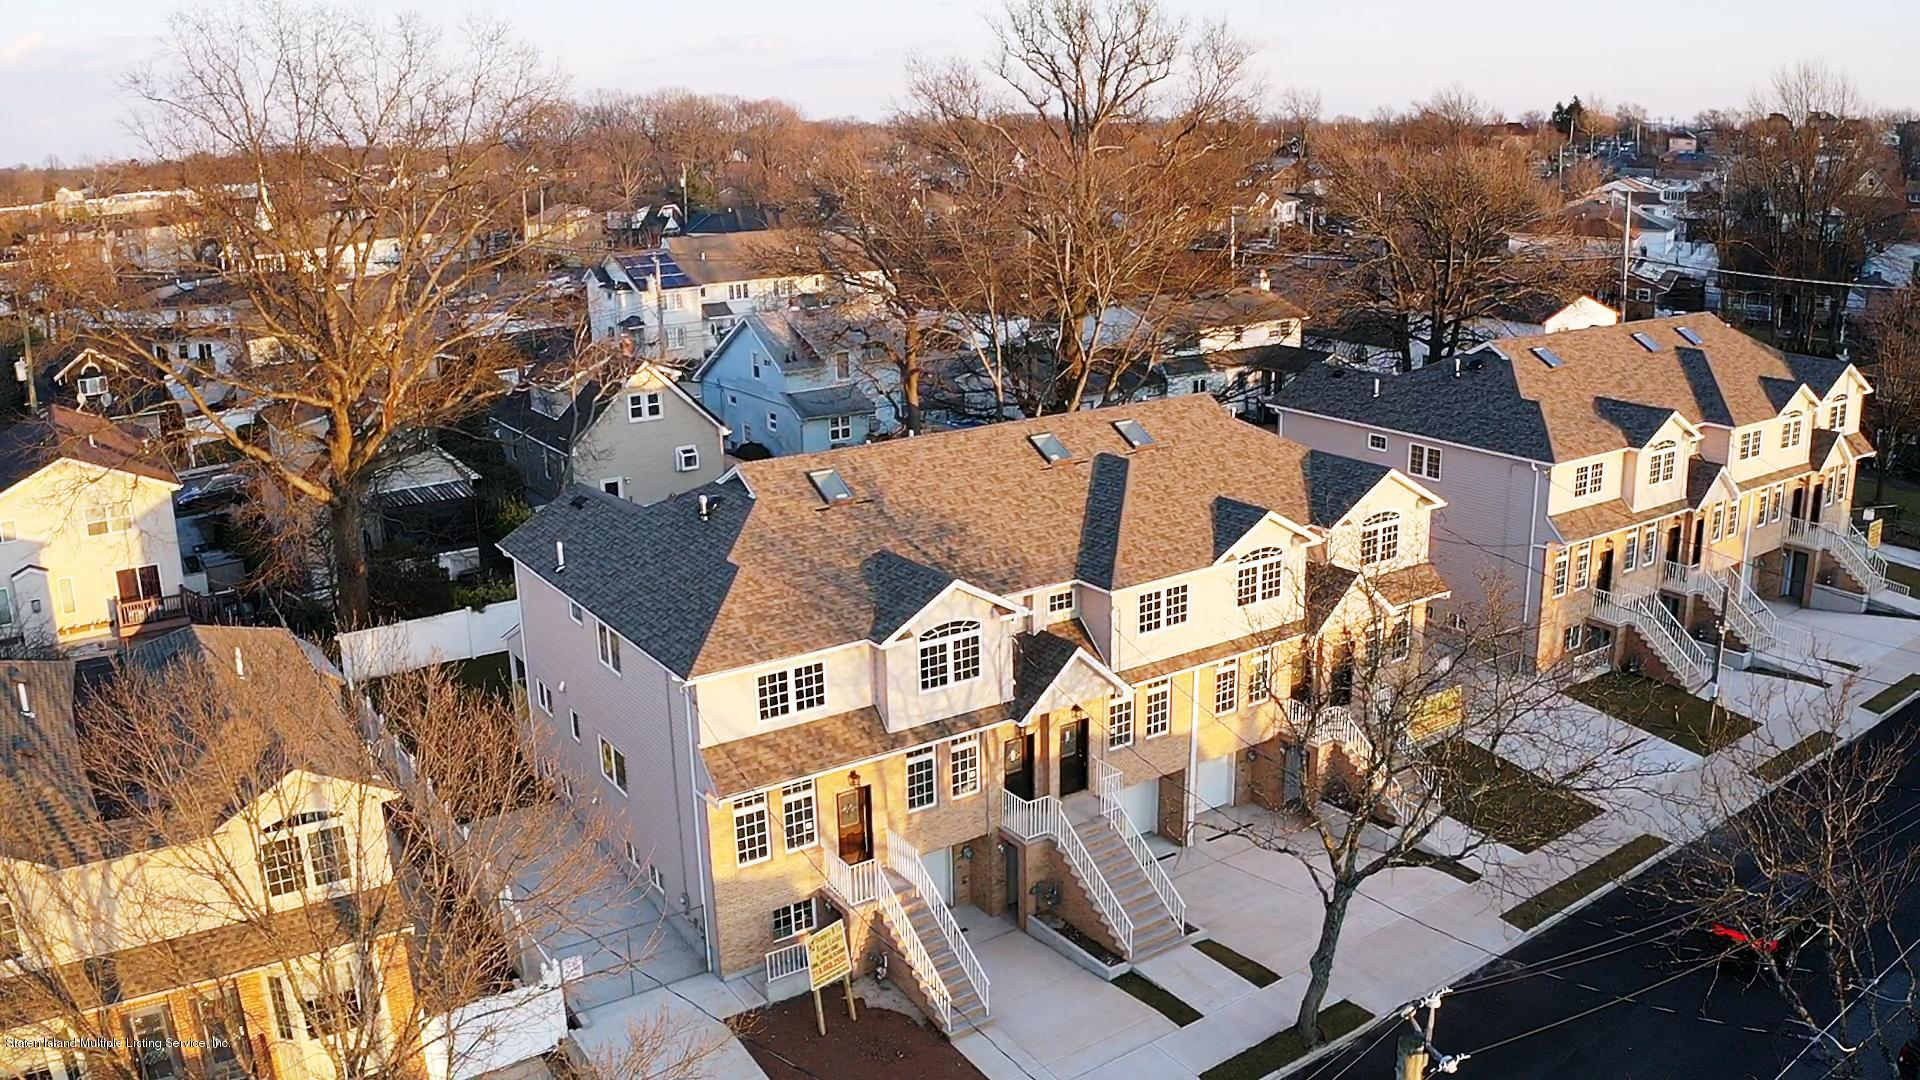 Single Family - Attached 34 Bamberger Lane  Staten Island, NY 10312, MLS-1135521-24